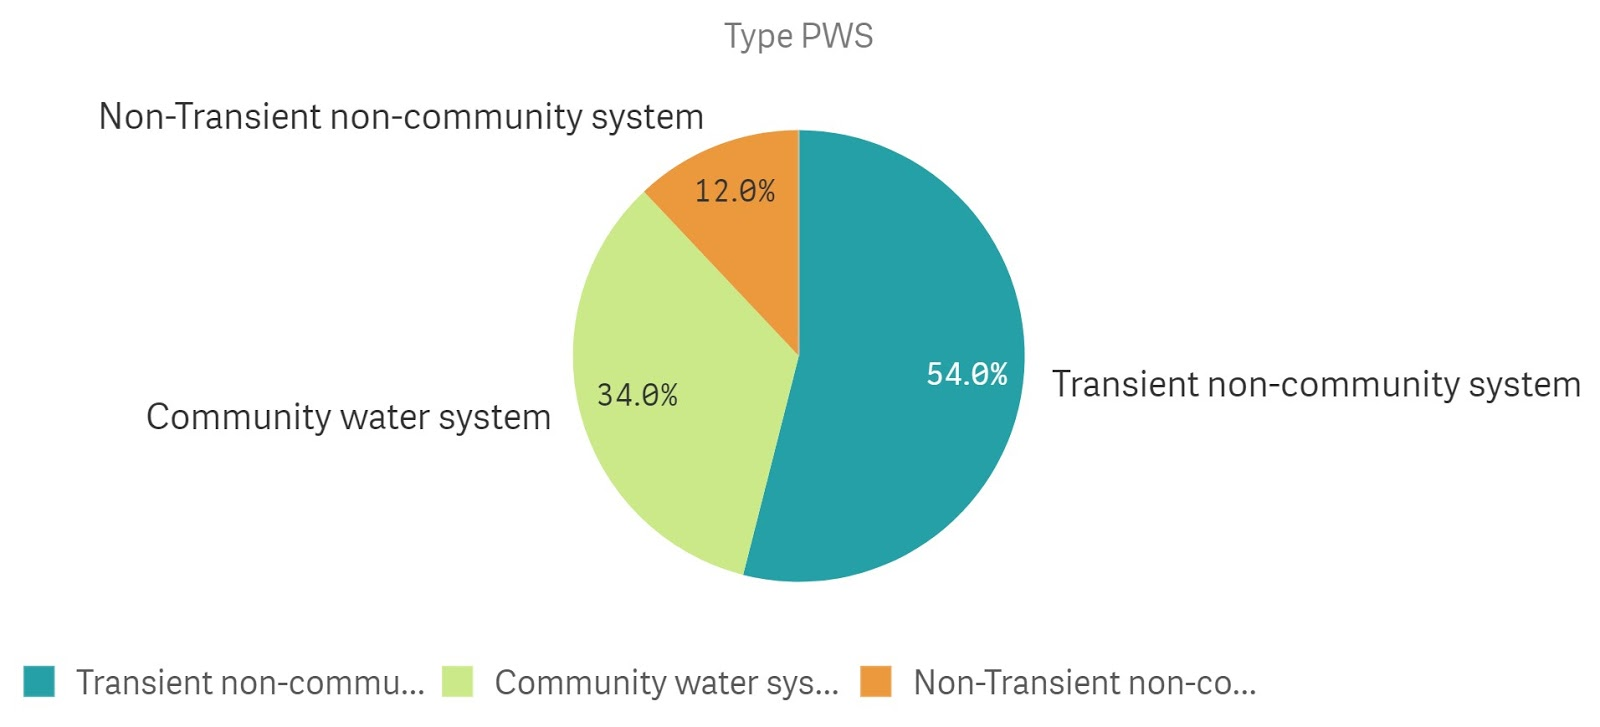 public-water-system-mix-in-the-us-water-market